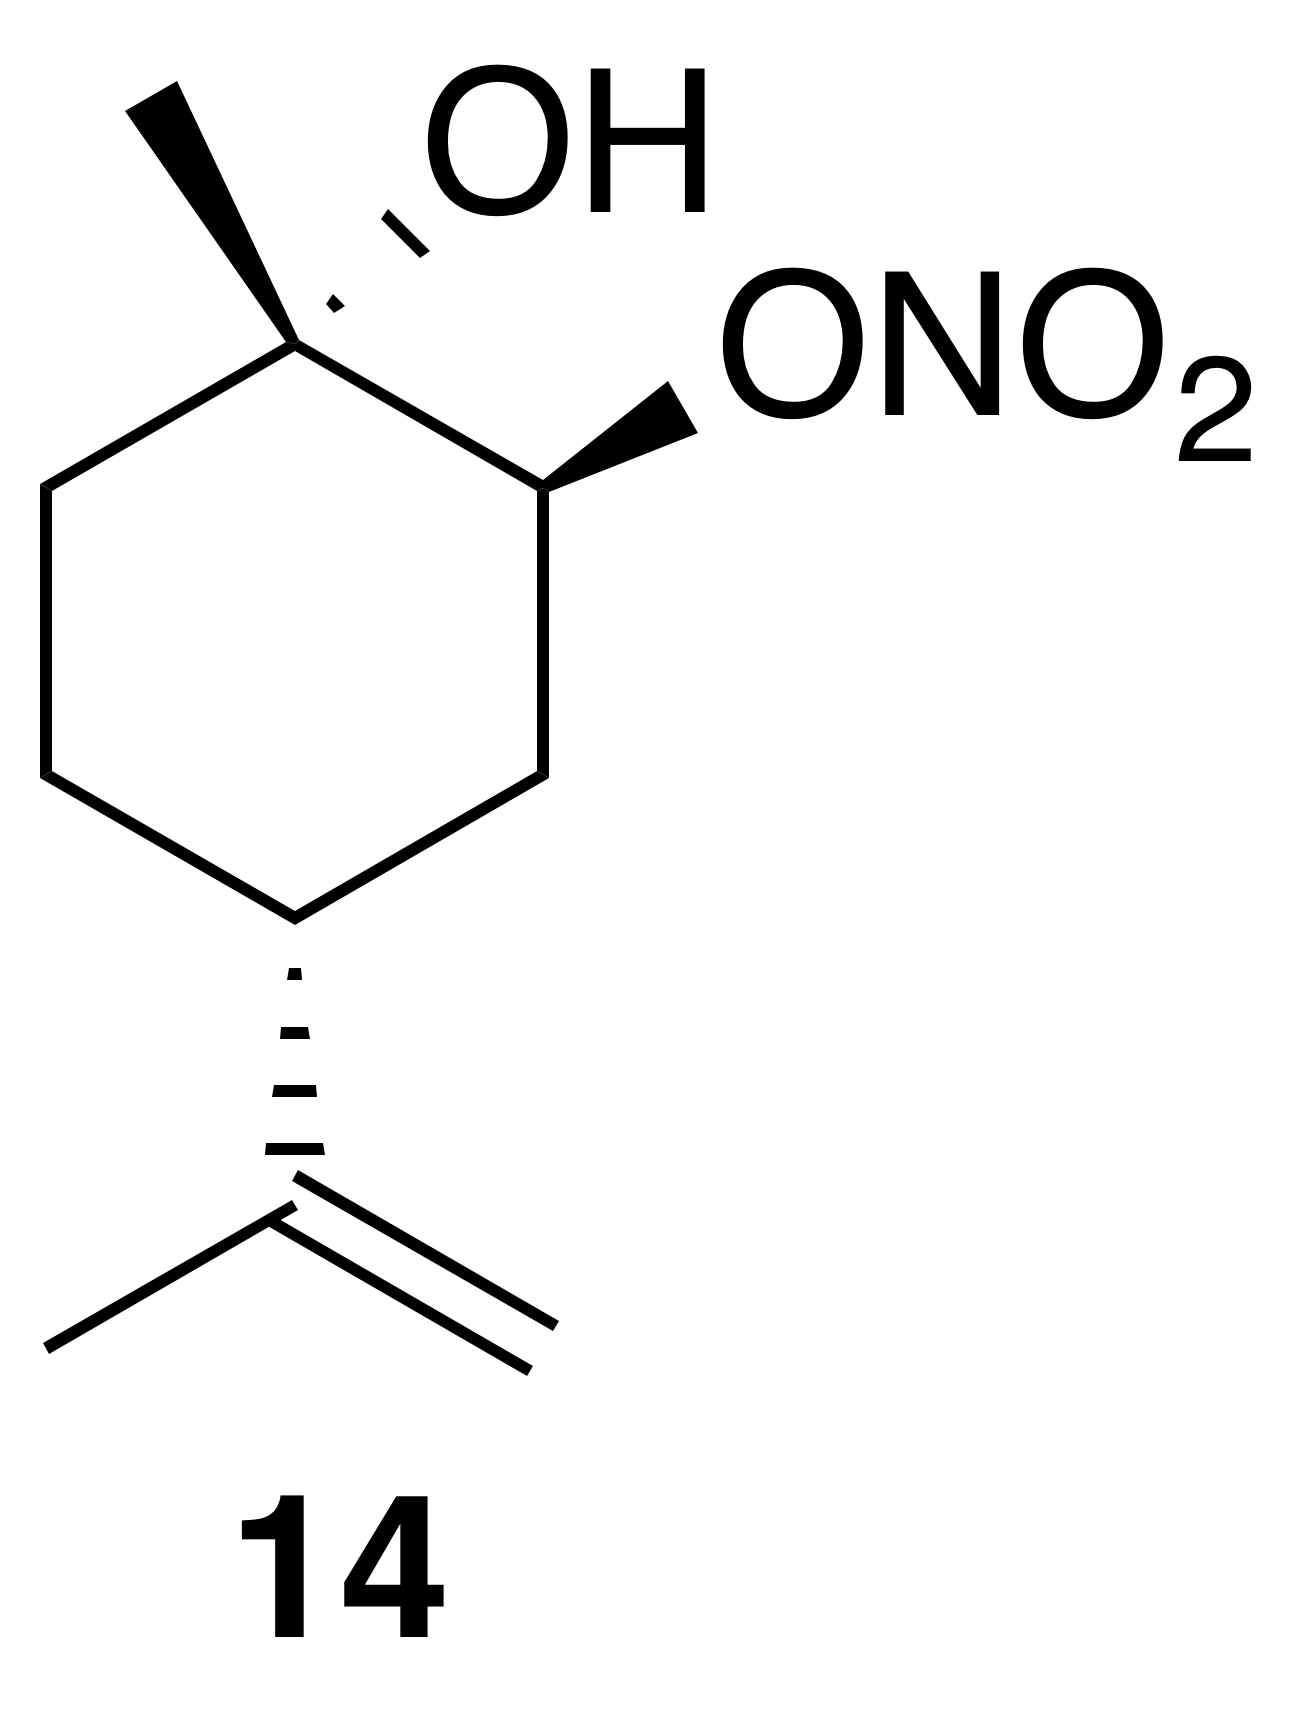 https://www.atmos-chem-phys.net/20/4241/2020/acp-20-4241-2020-g13